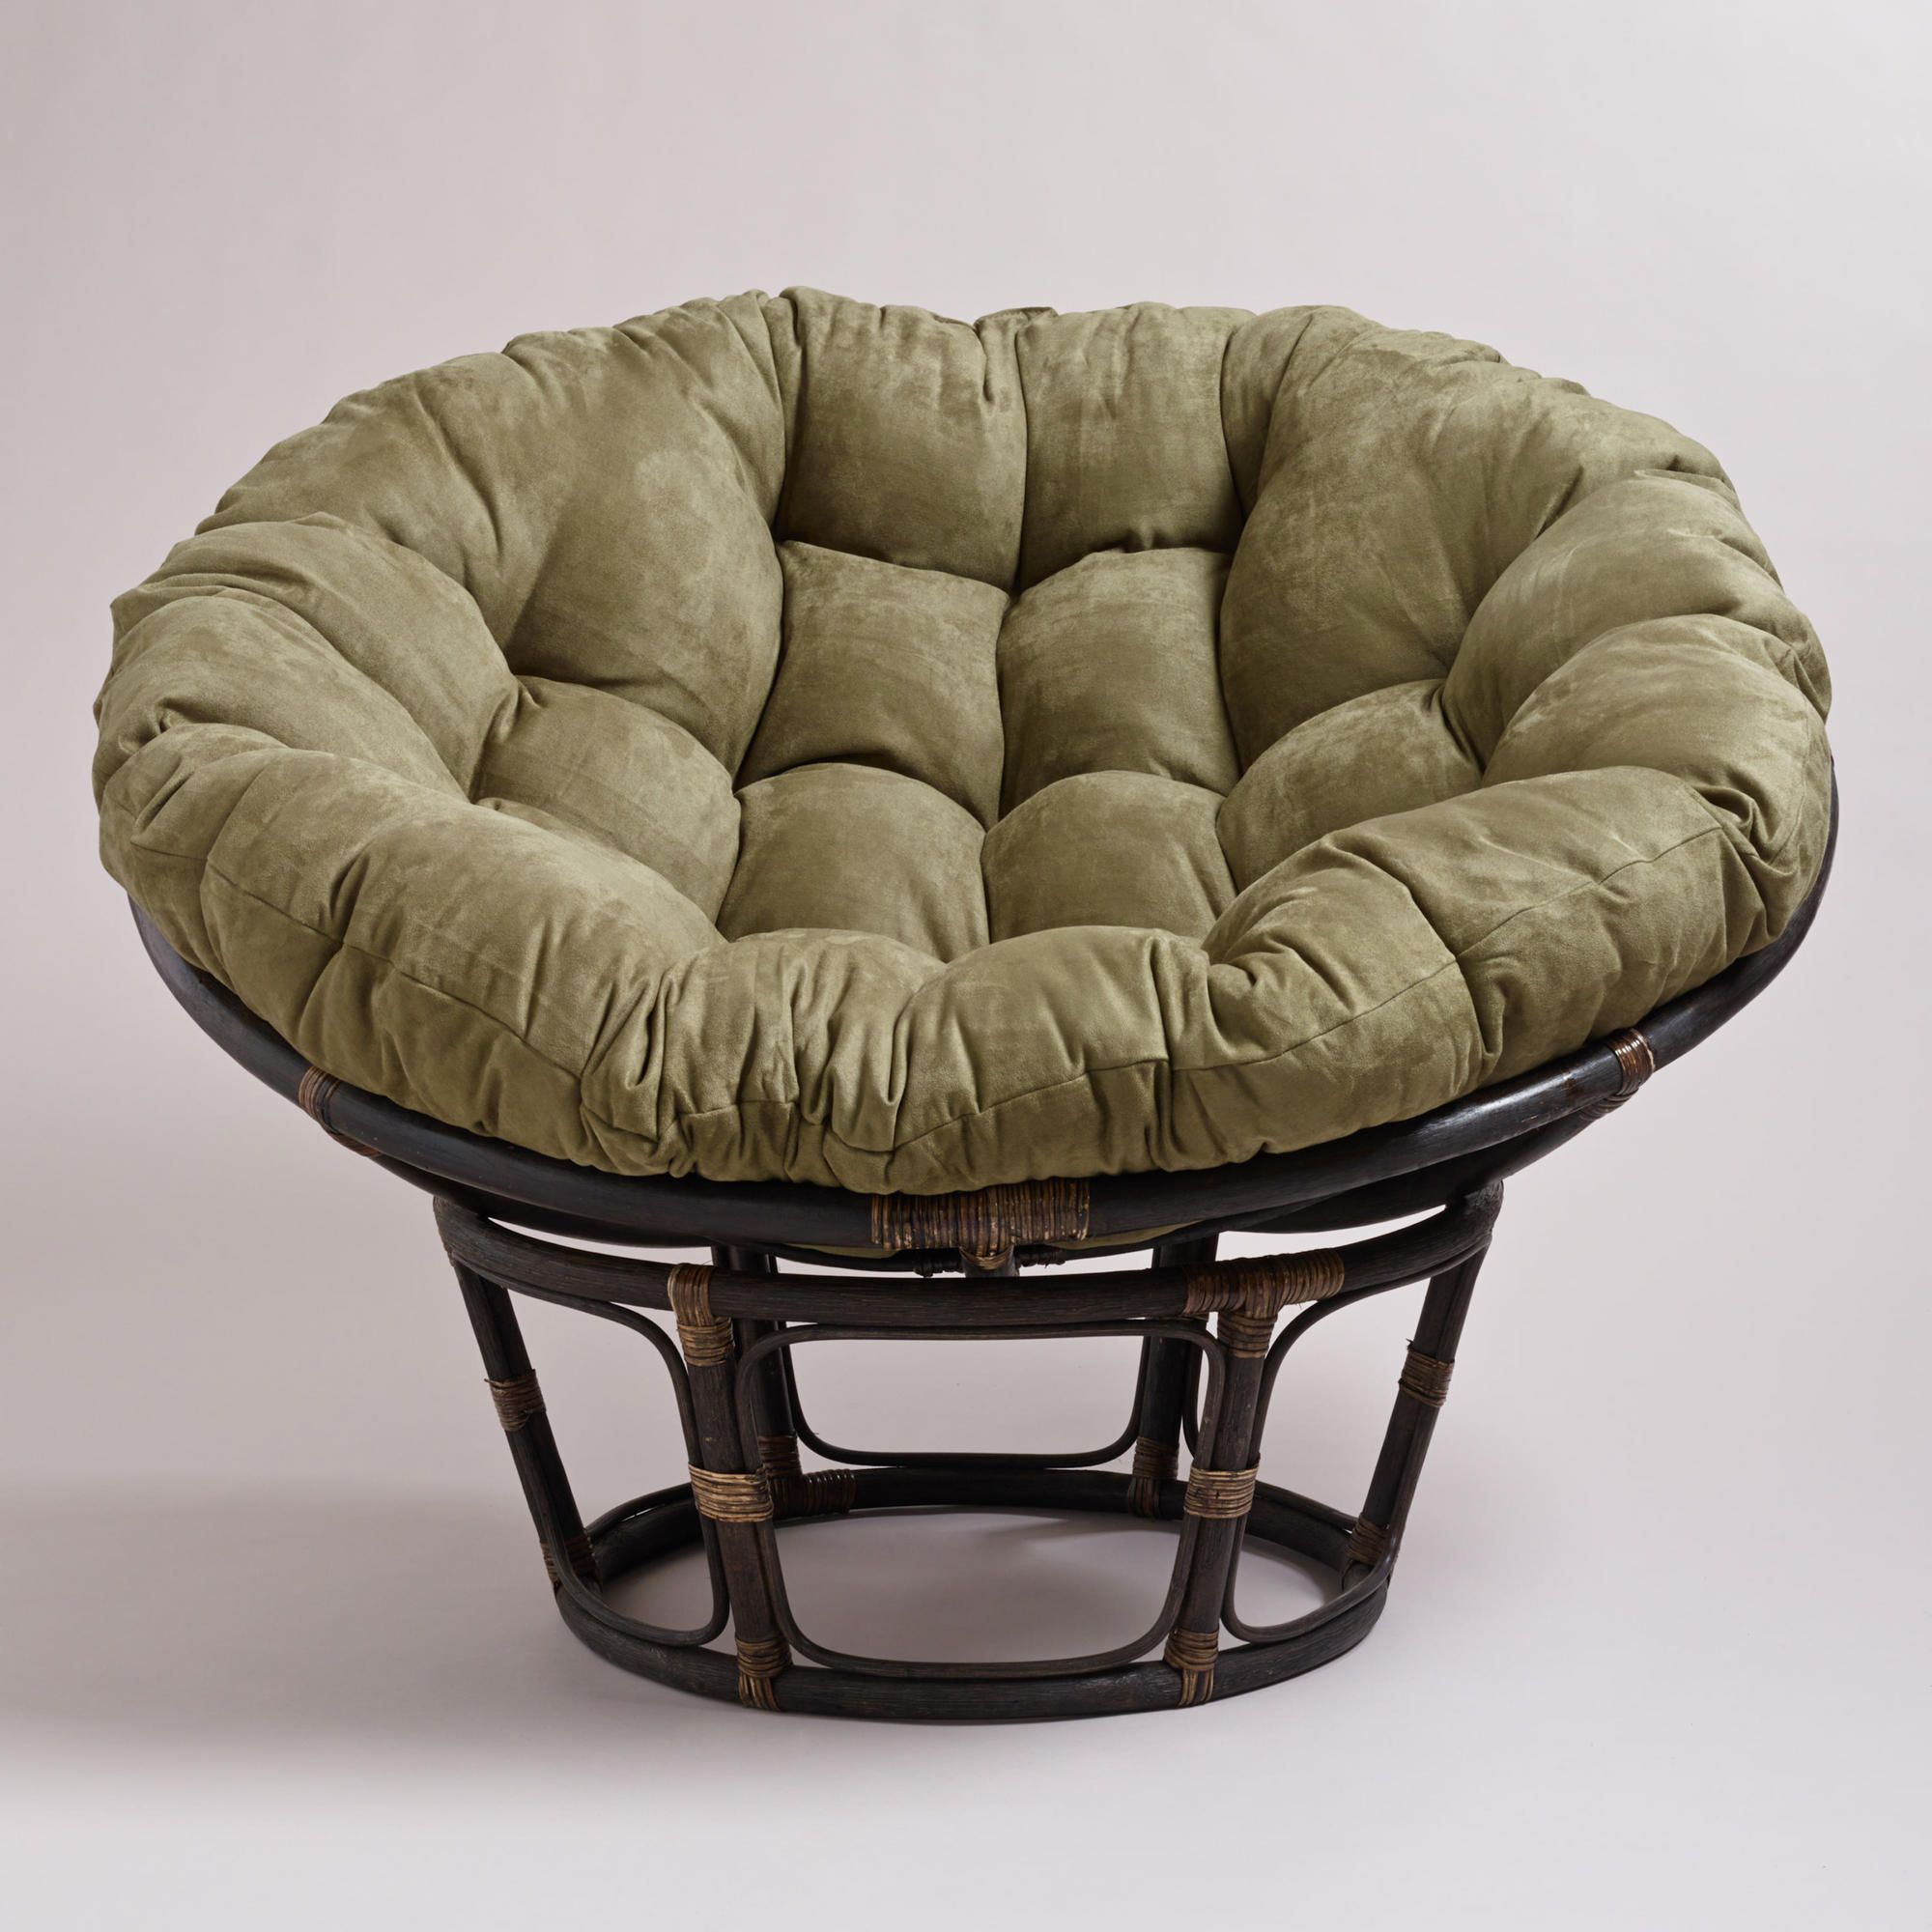 Olive Porcelain Or Ivory Papasan Chair Cushion World Market Papasan Chair Papasan Chair Cushion Outdoor Papasan Chair